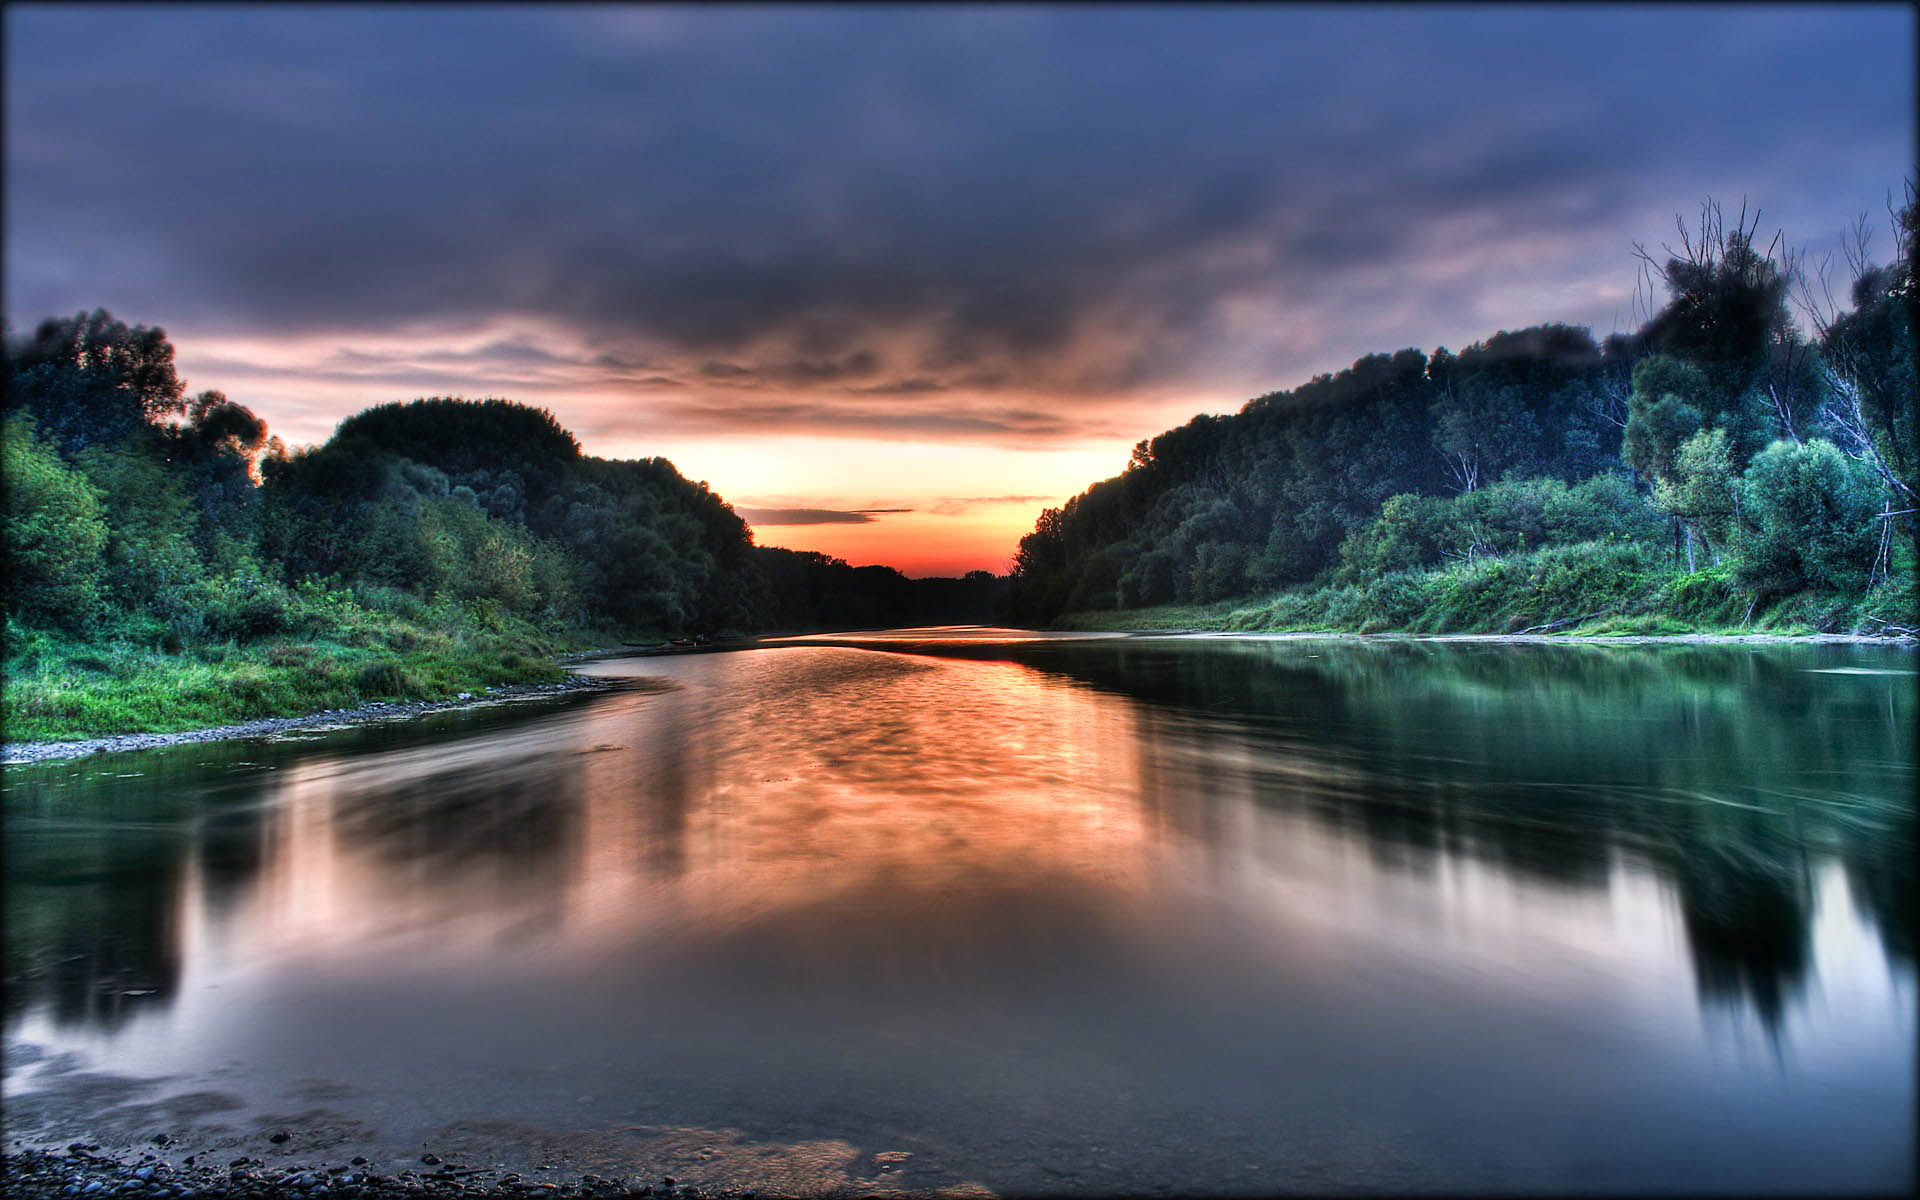 Hd Backgroumds: Beautiful Sunrise Wallpapers 2015 (High Definition)